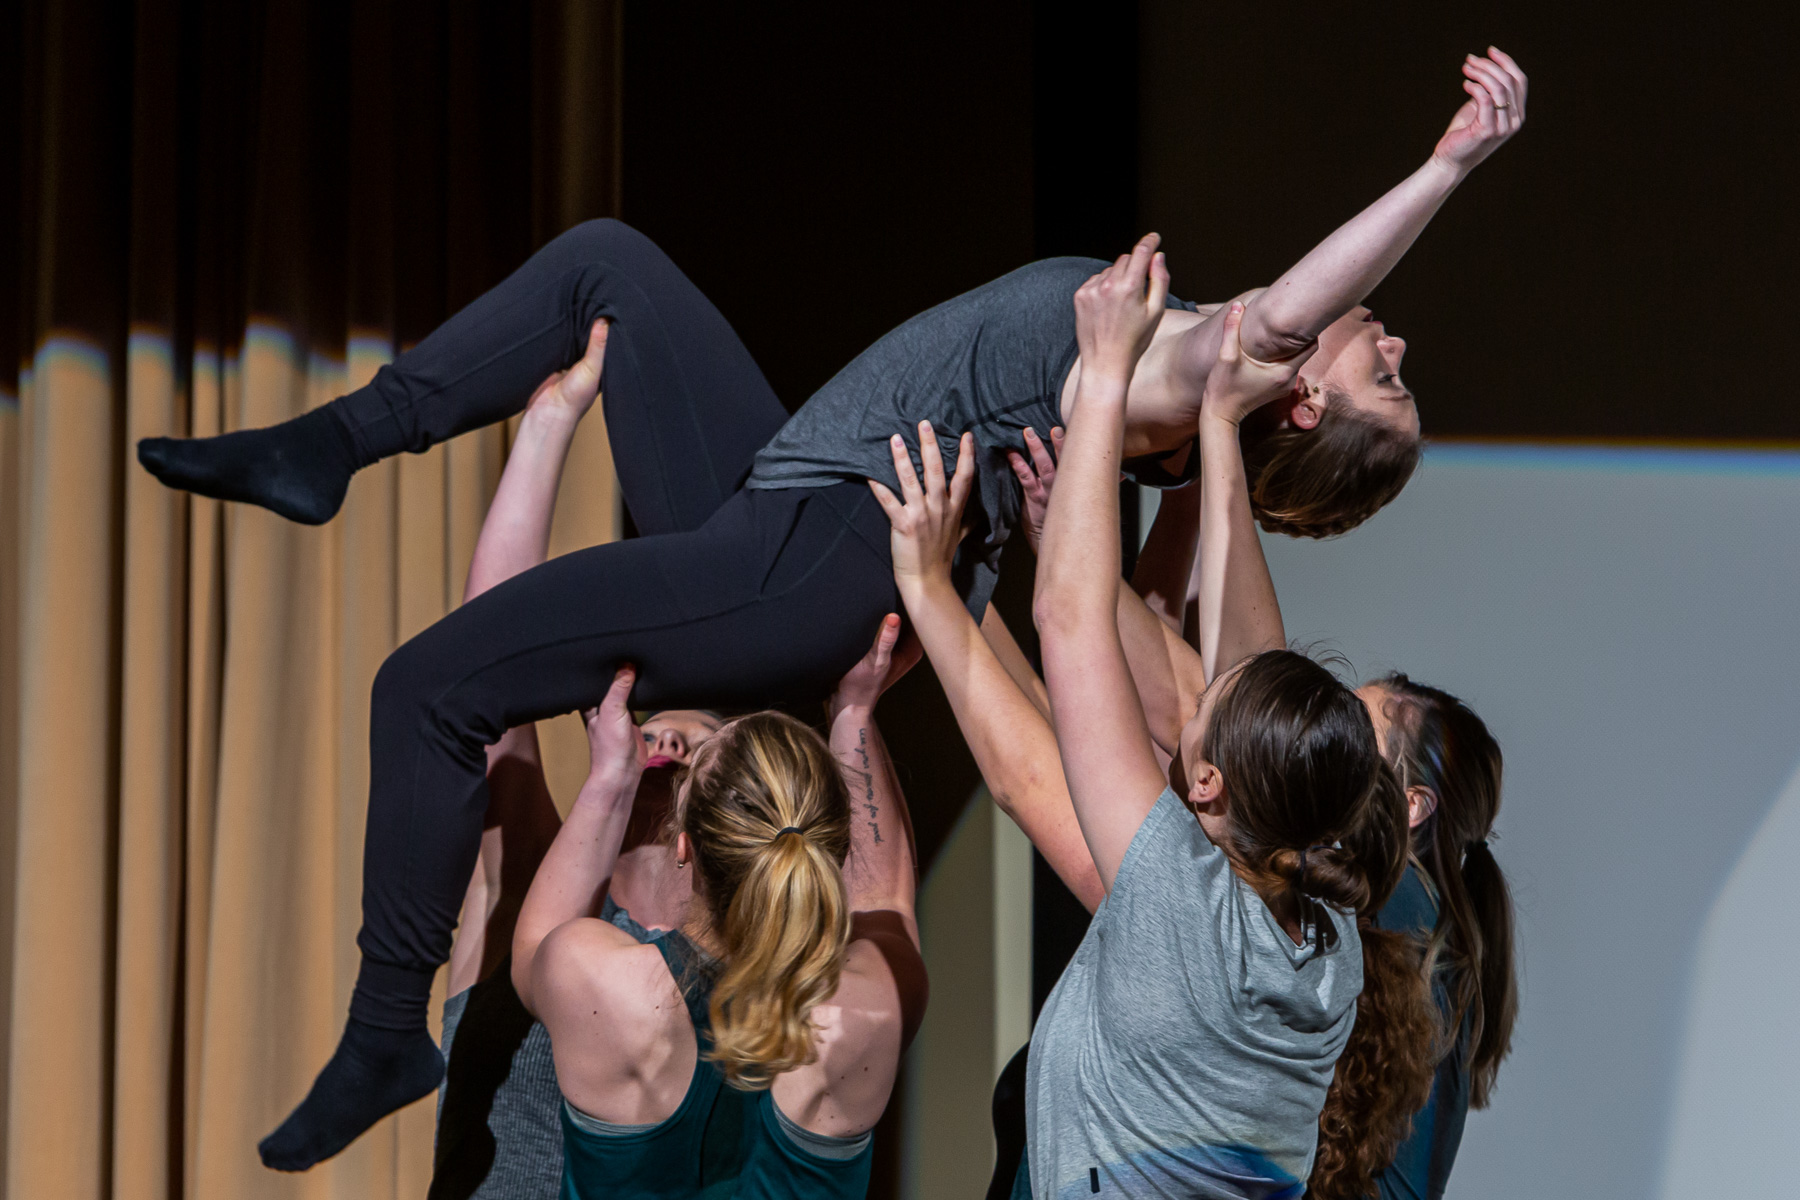 Members of the Trifecta Dance Collective perform an original piece, telling the story of homelessness through movement. (DePaul University/Randall Spriggs)